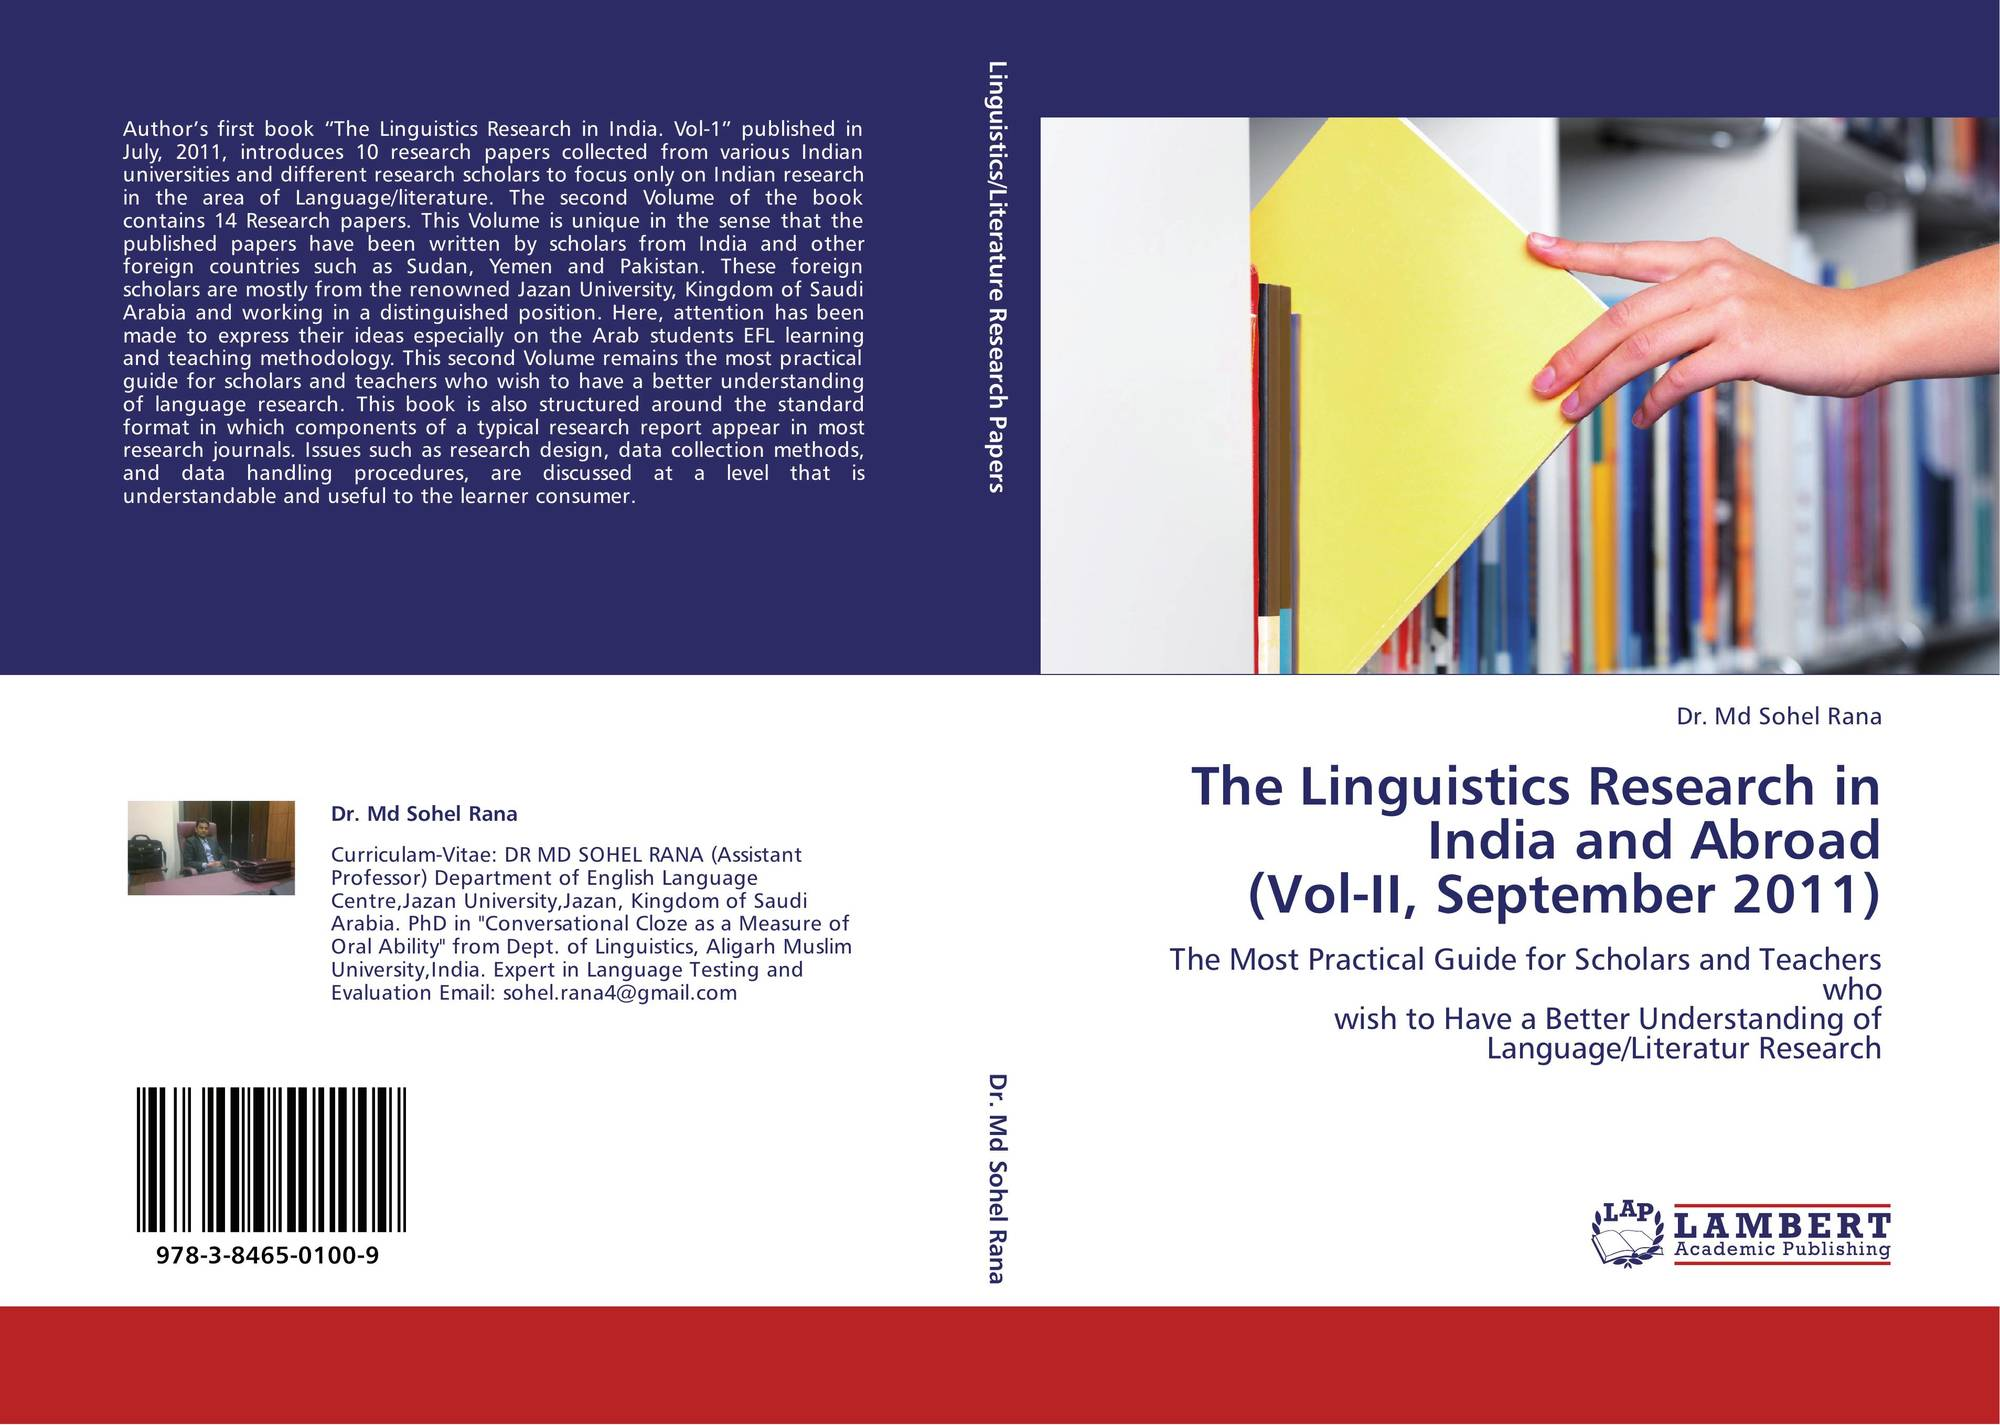 introduction to linguistics reflection paper This paper will be a substantially revised and extended version of either the first or second paper, reflecting new ideas and perspectives you have developed through this course and your response to the writing instructor's comments on your previous version.